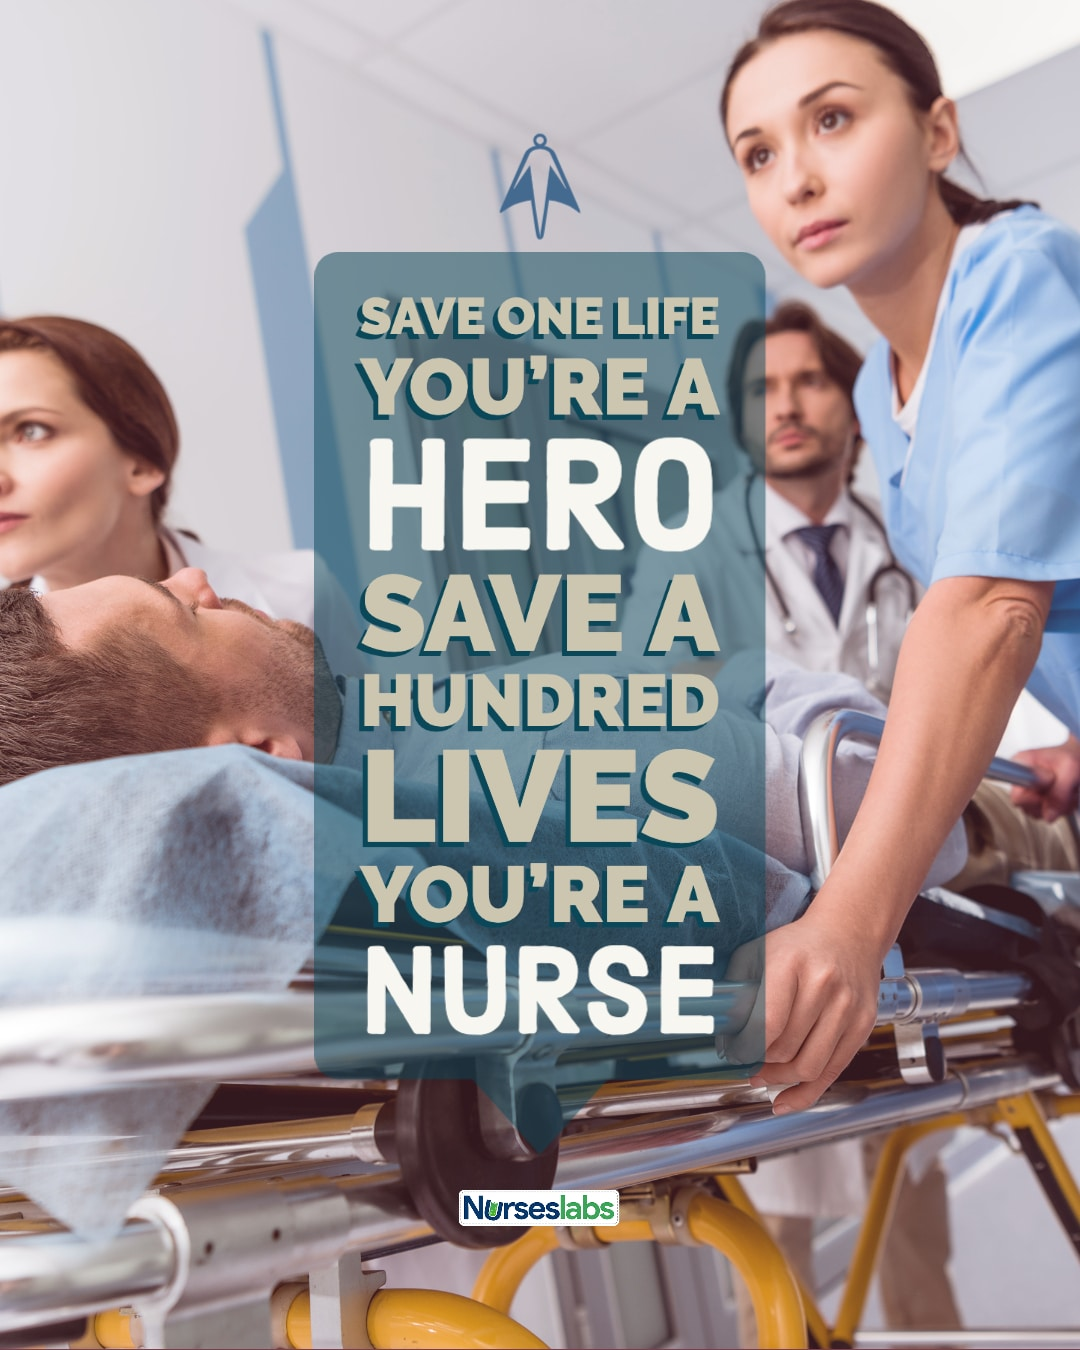 Save one life you're a hero. Save a hundred lives you're a nurse. -Unknown